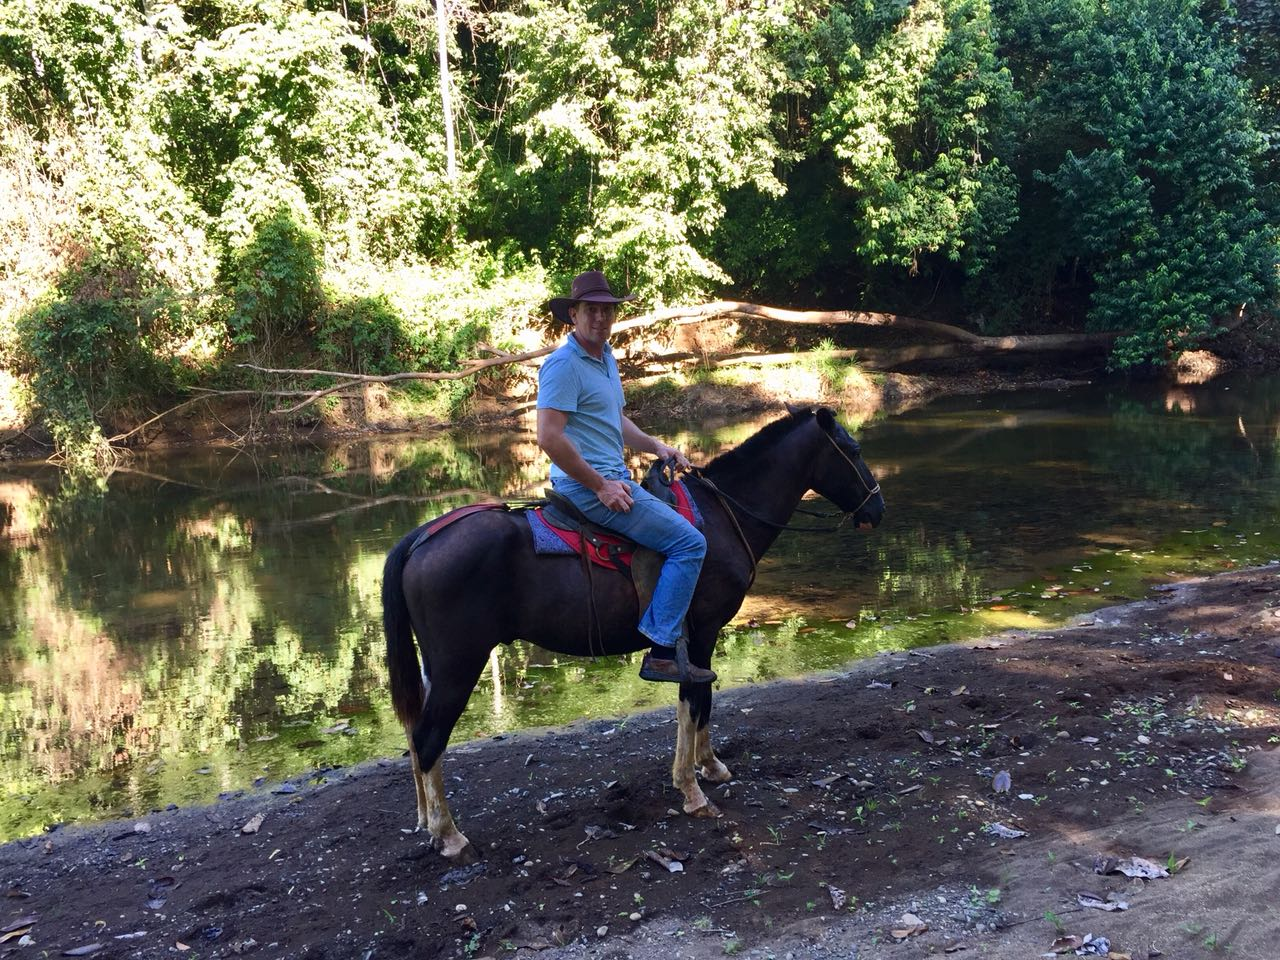 horseback in the river